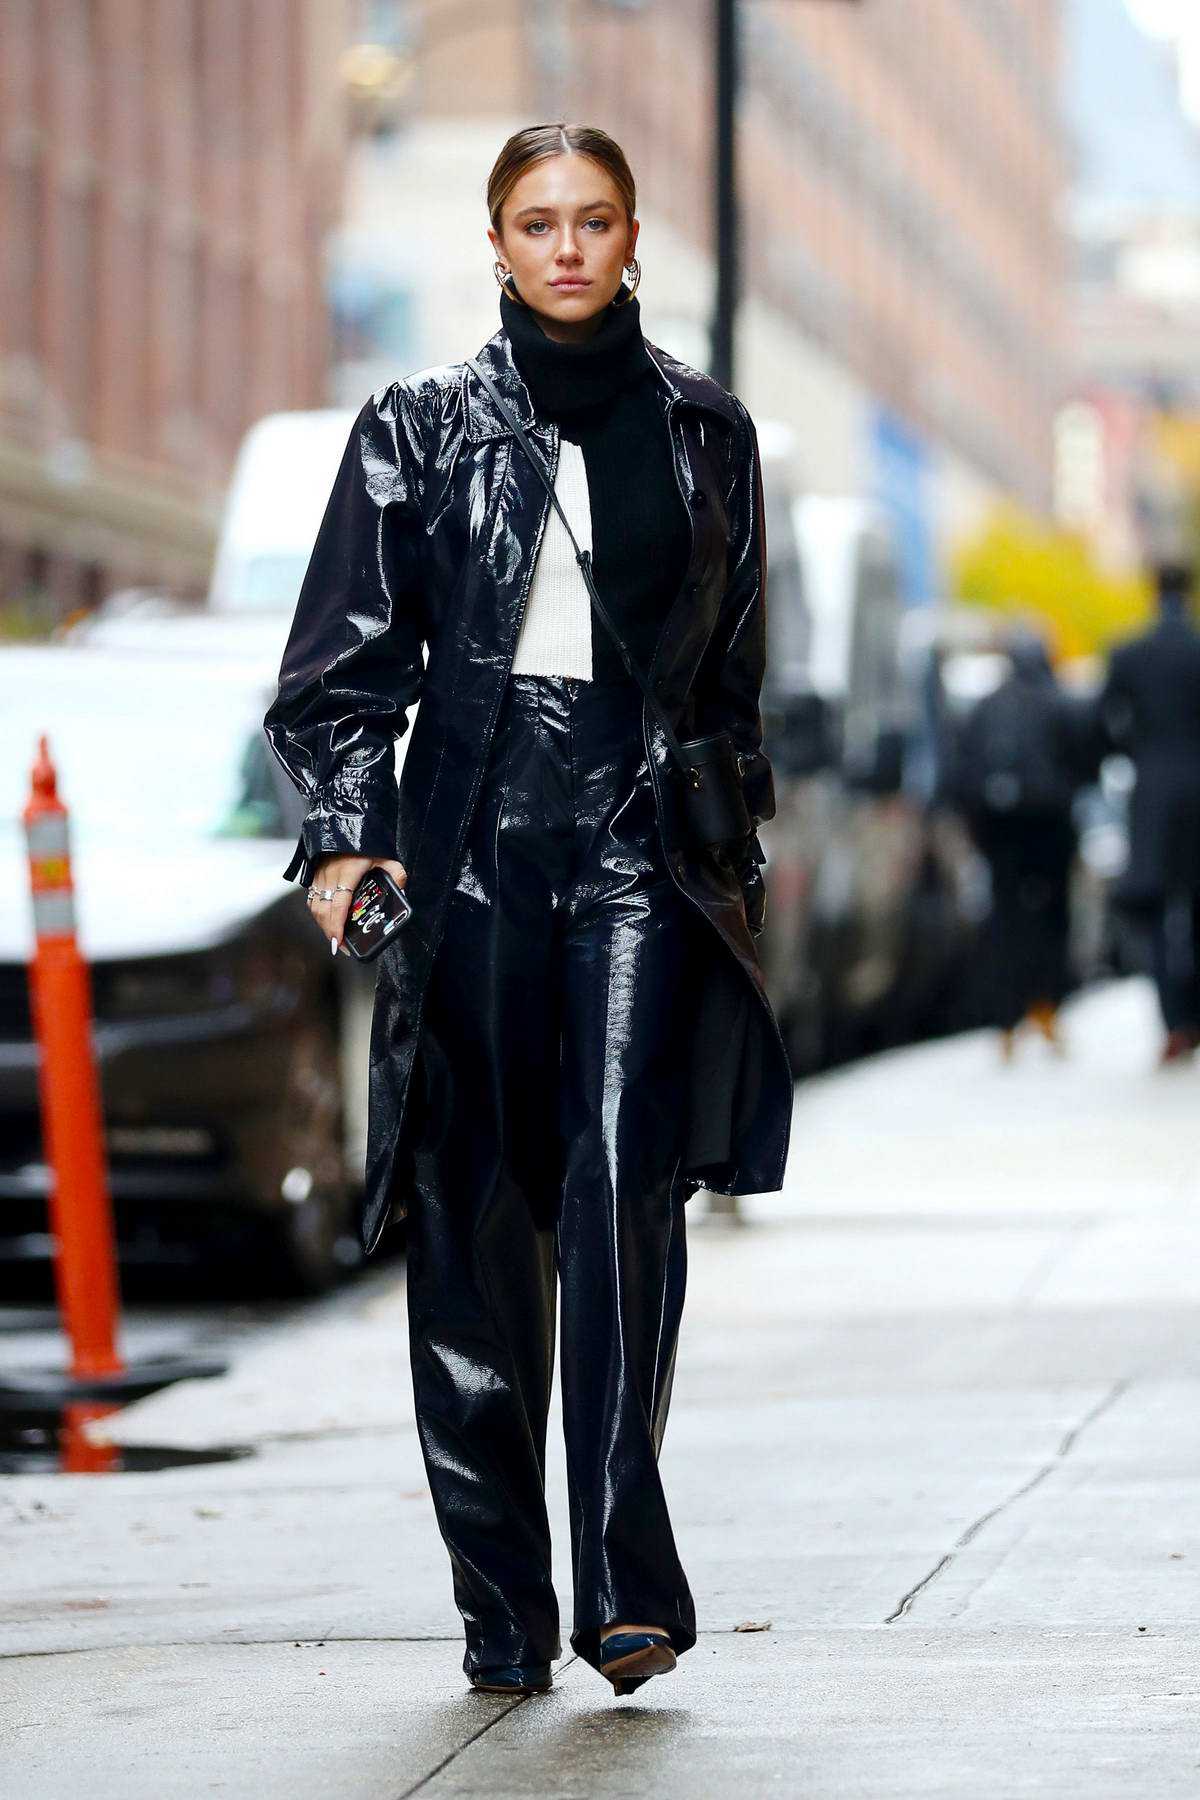 Delilah Hamlin steps out on a rainy day wearing leather trench coat with matching trousers as she heads to a business meeting at Armani in New York City